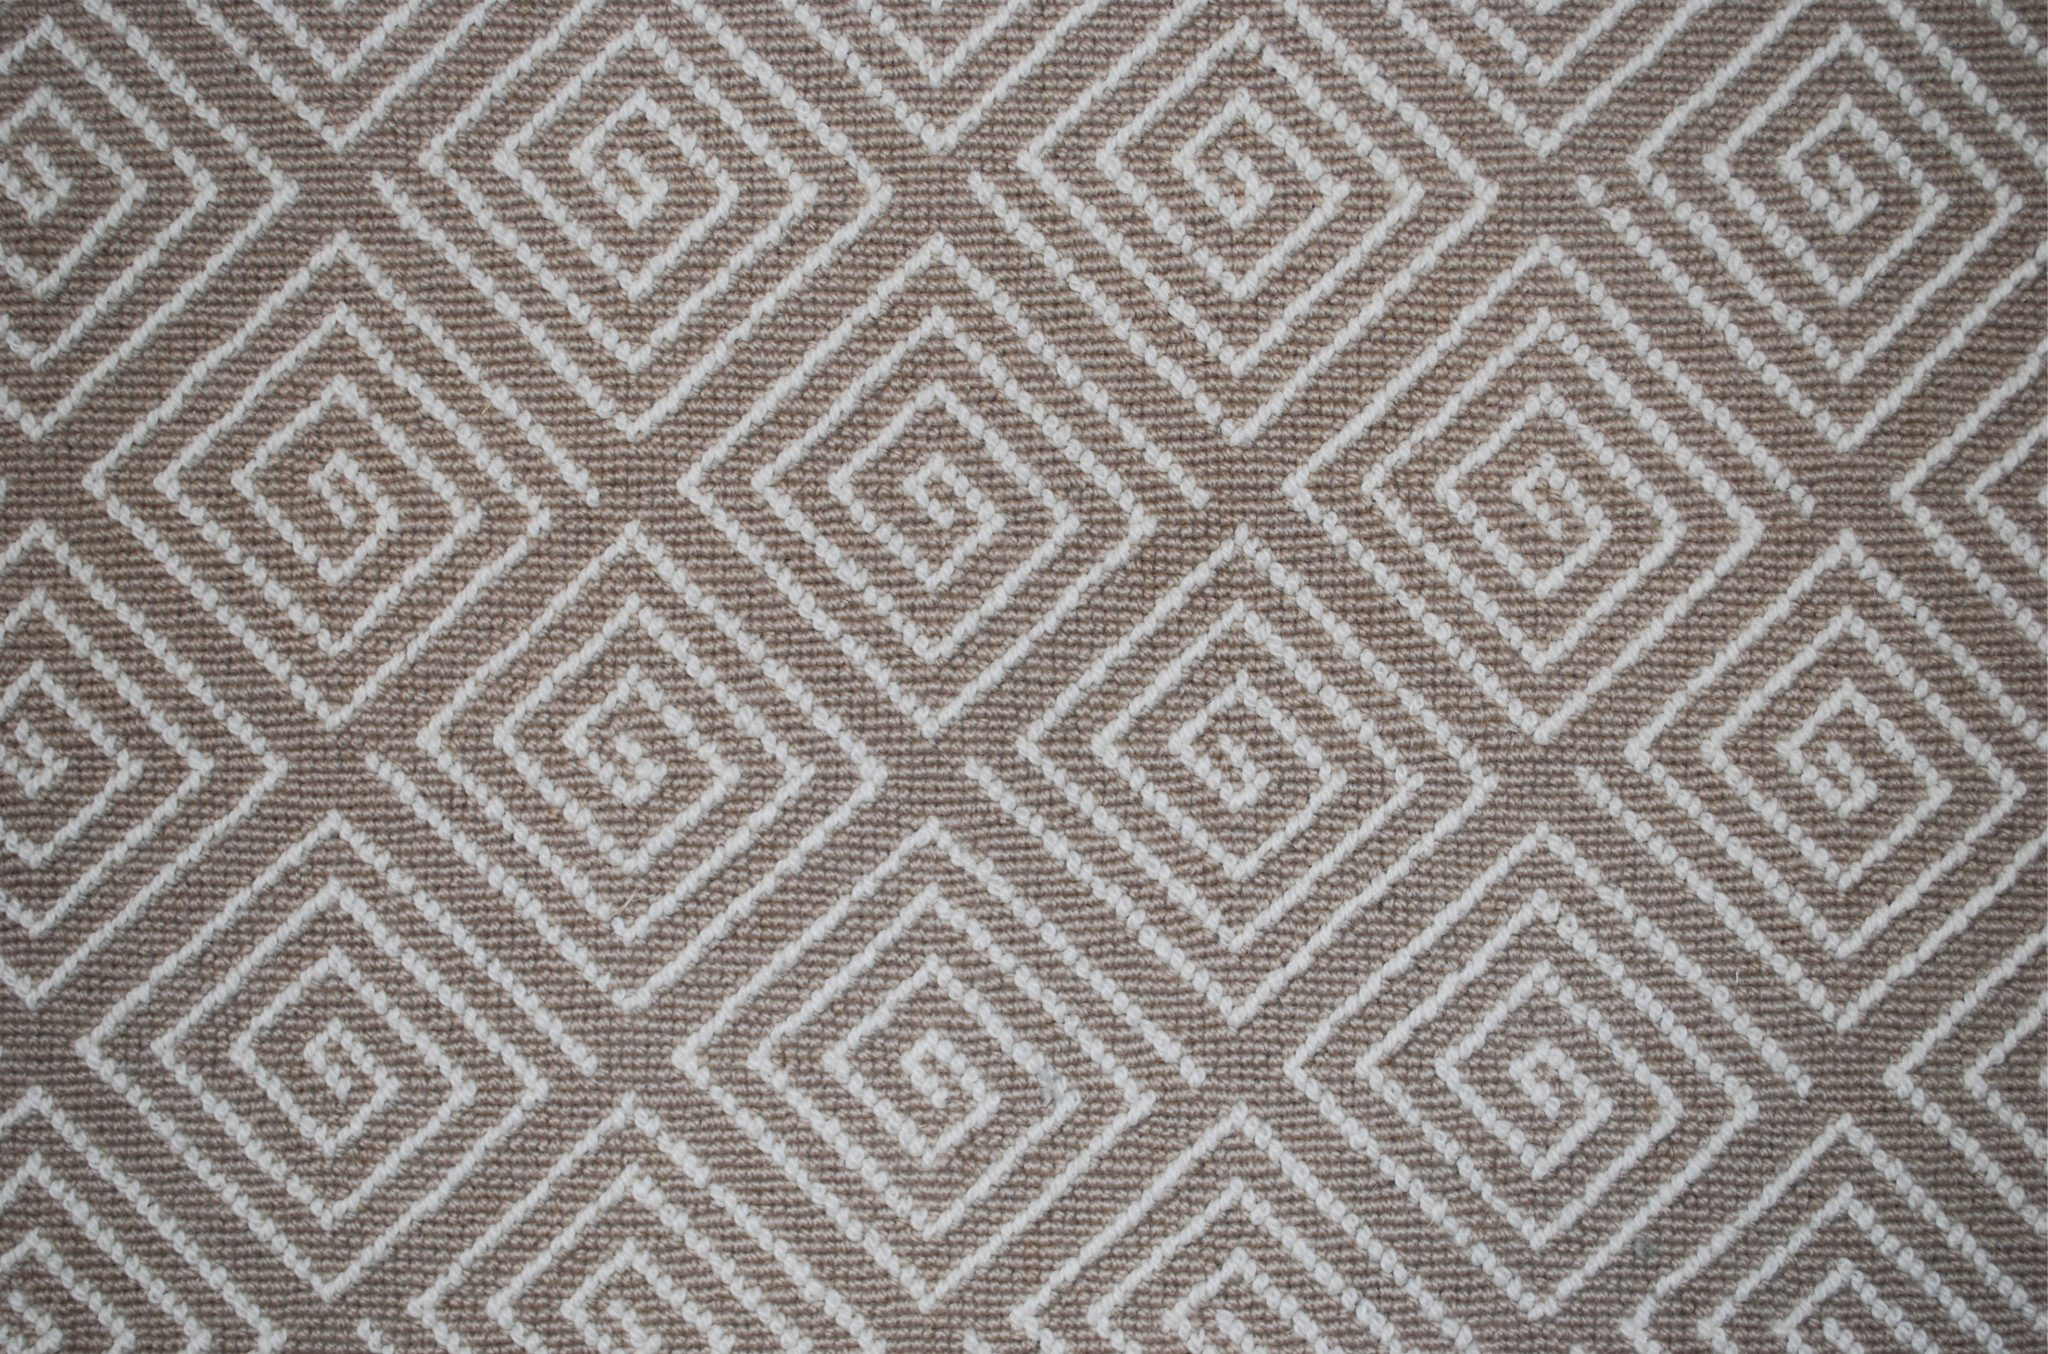 Quest Ii By Prestige Carpets In Dalton